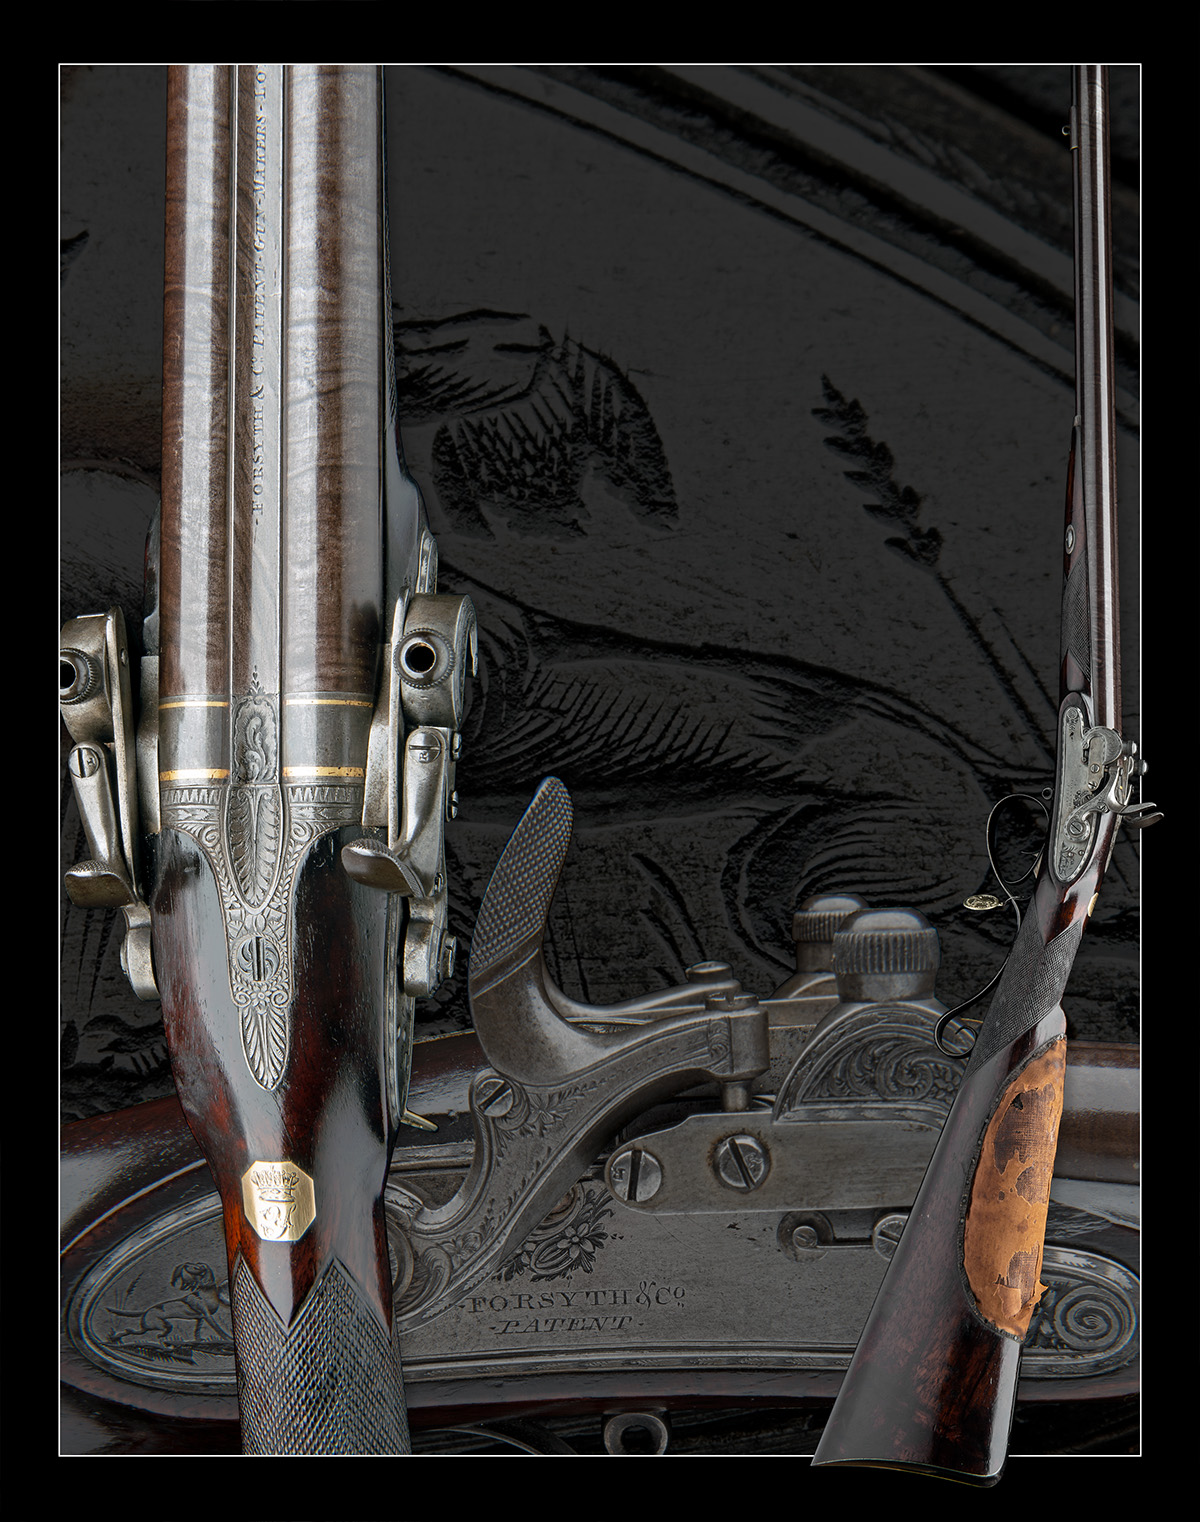 EX W. KEITH NEAL: FORSYTH & CO., LONDON AN EXCEEDINGLY RARE 19-BORE SELF-PRIMING SPORTING GUN, - Image 11 of 21